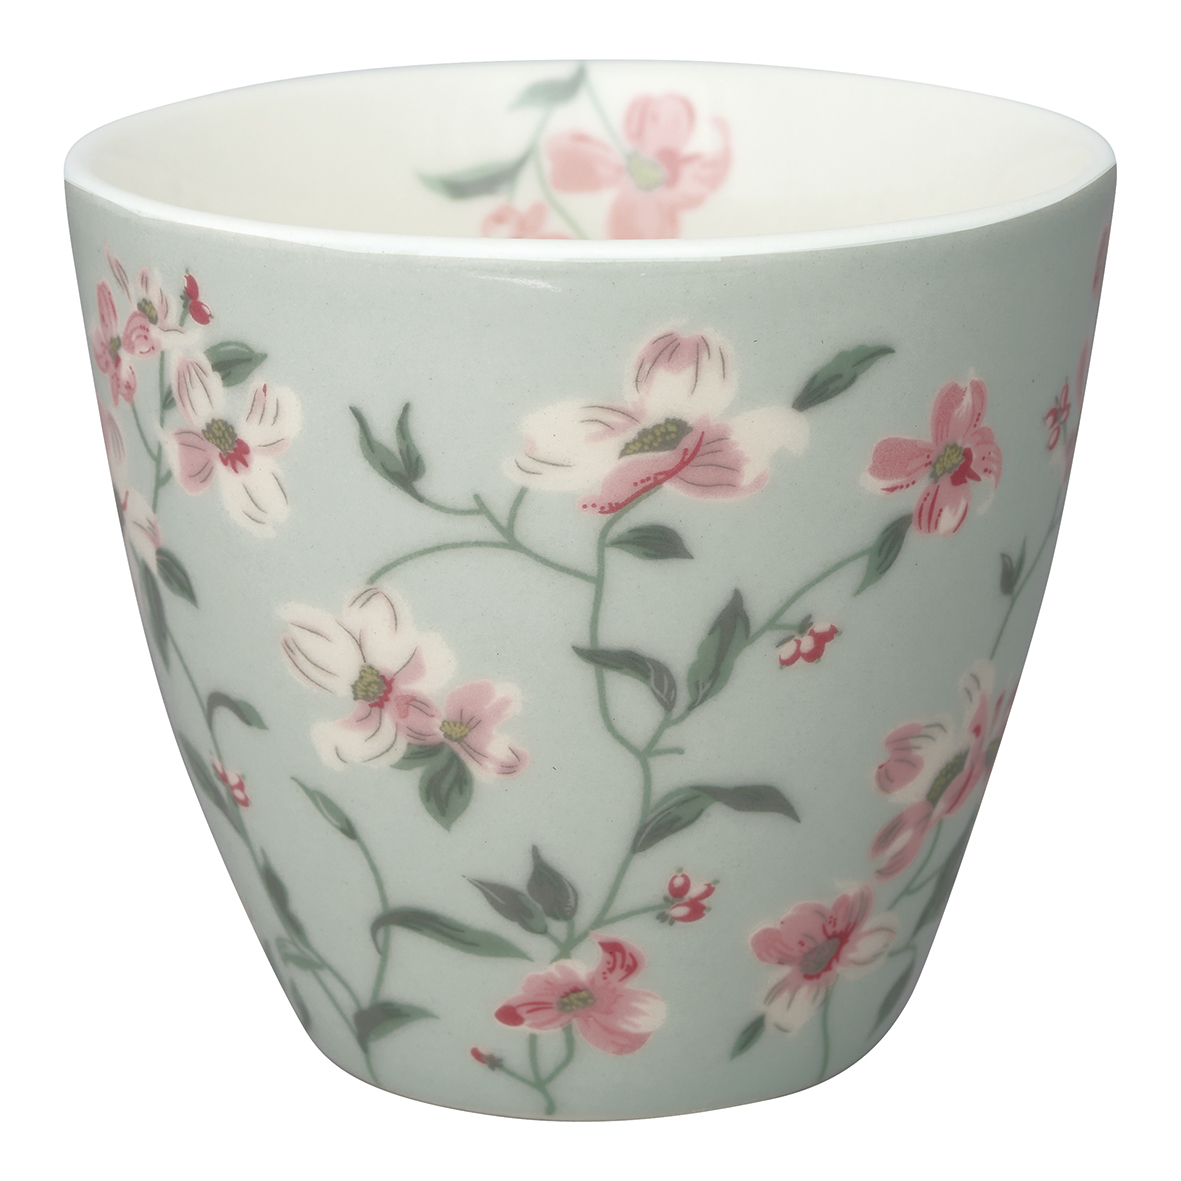 GreenGate Lattemugg Jolie pale mint